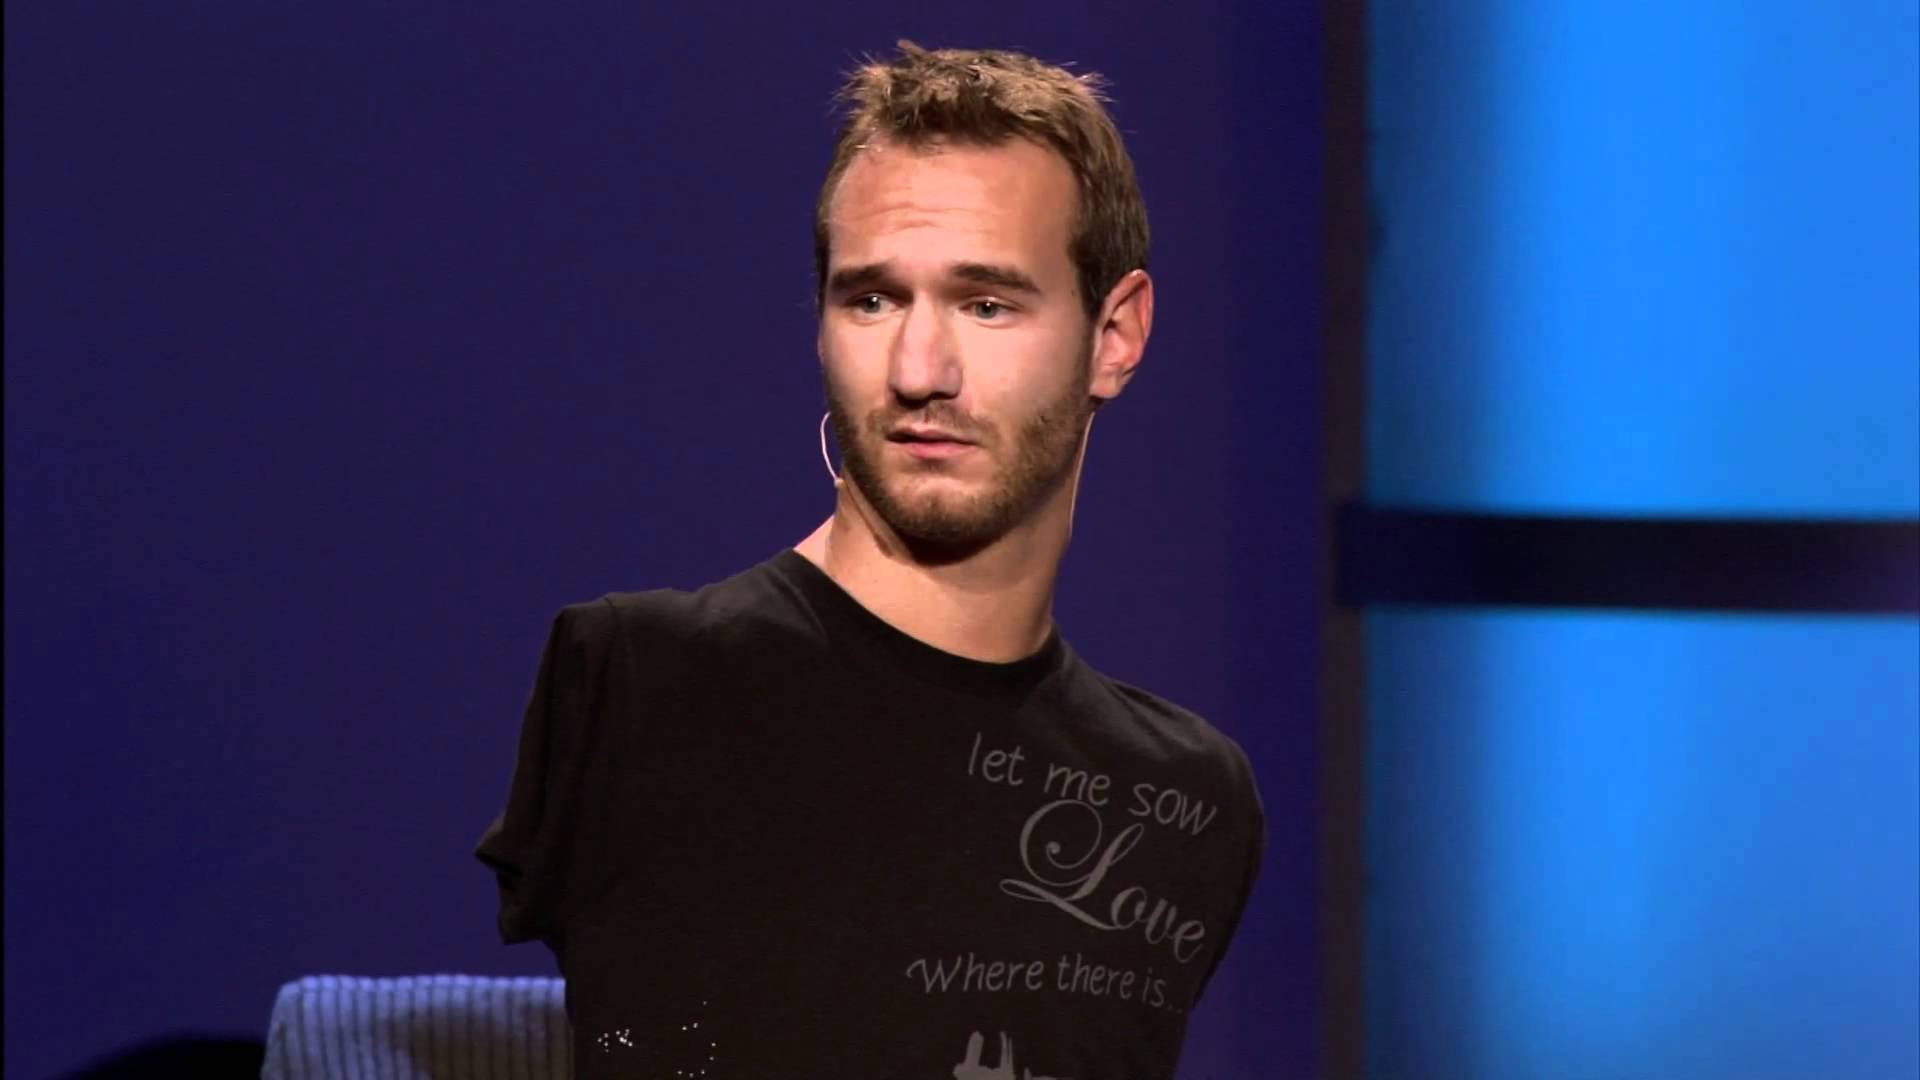 Inspirational Nick Vujicic Quotes